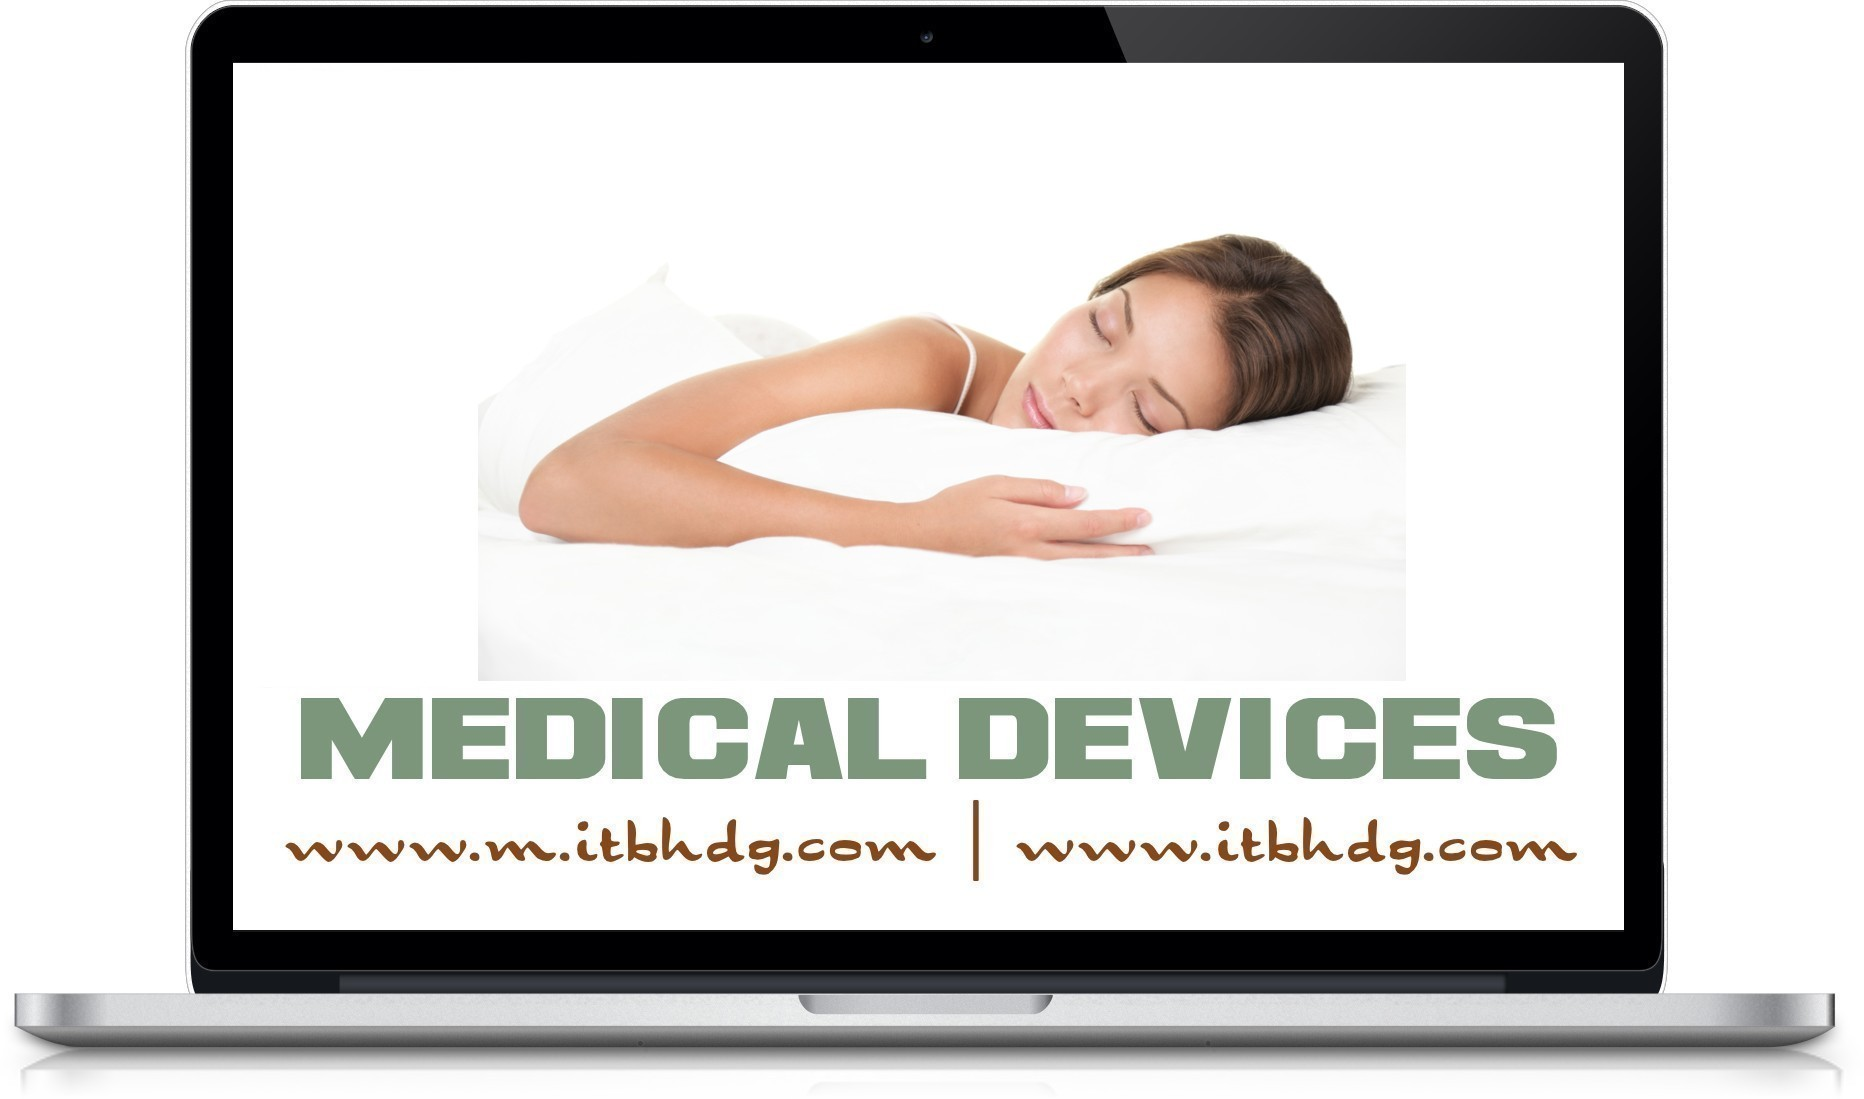 FDA Registration | MEDICAL DEVICES COMPANY | CLICK & SAVE 35% | www.m.itbhdg.com | www.itbhdg.com